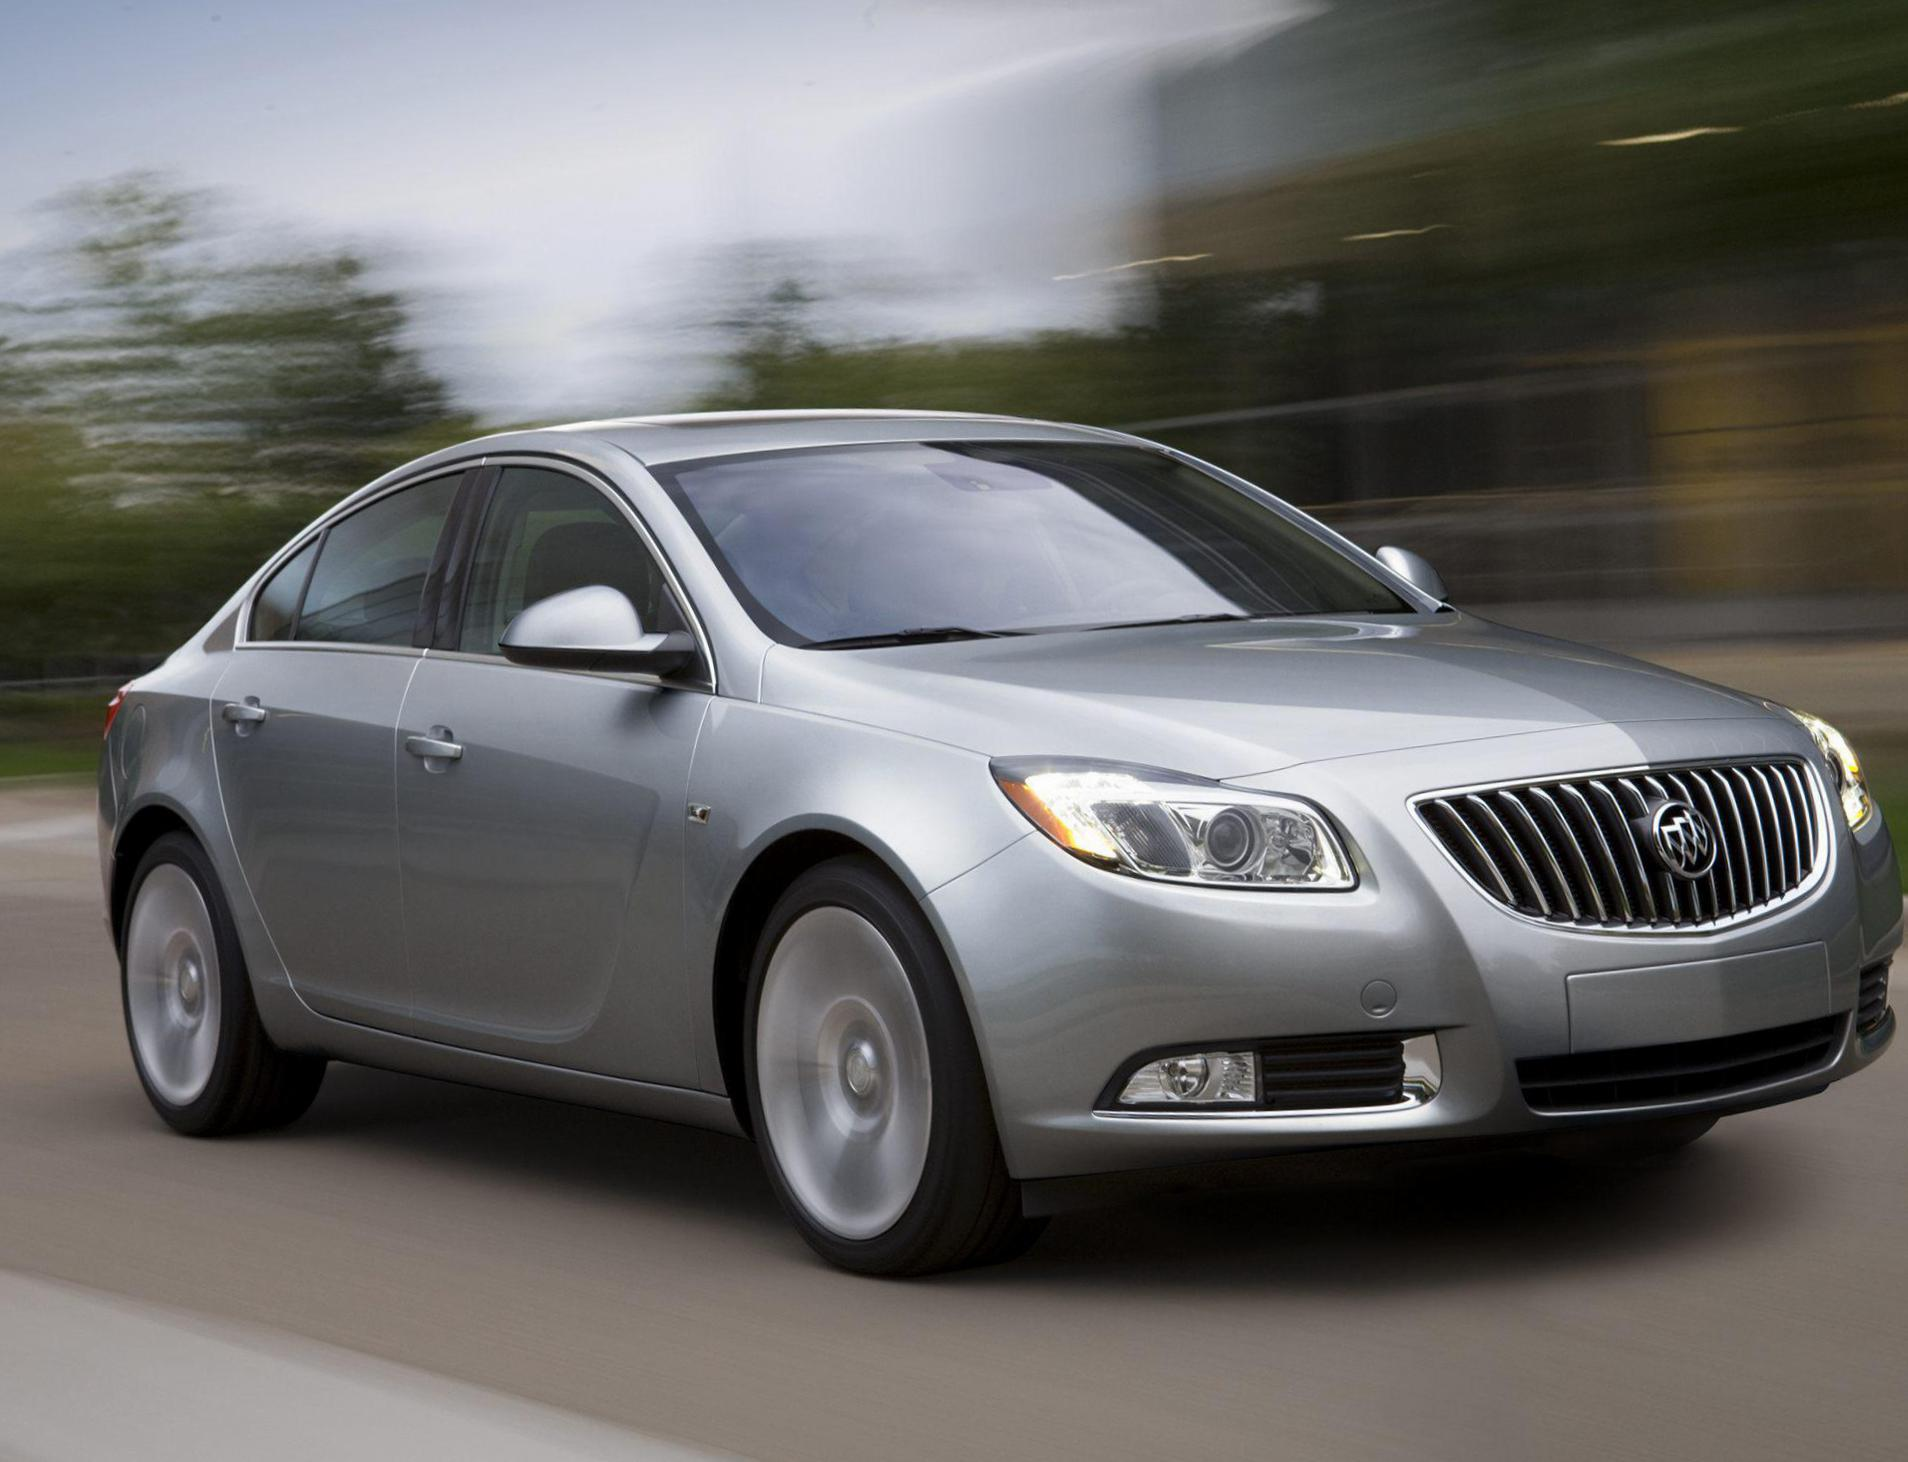 Buick Regal new sedan